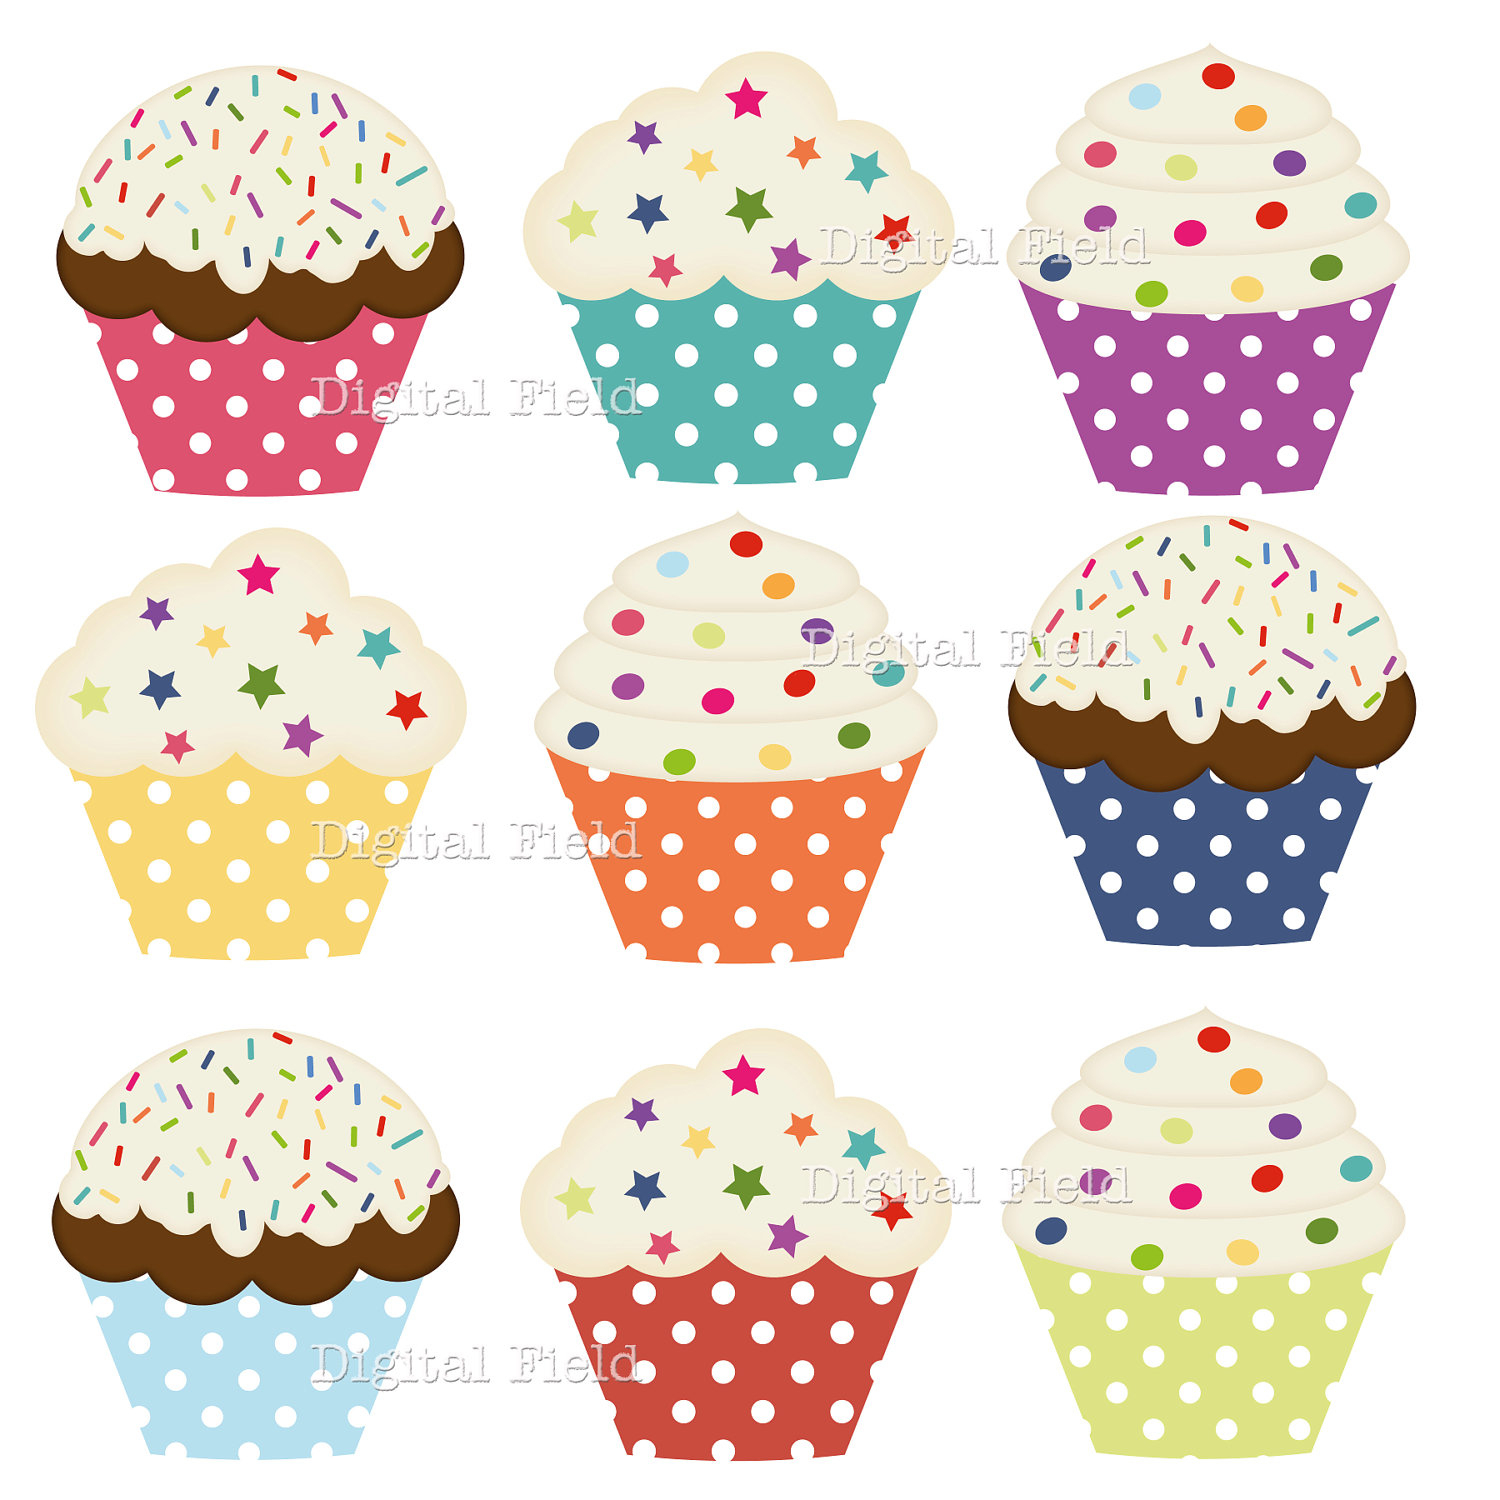 Printable Cupcake Clipart - Free Printable Cupcake Clipart